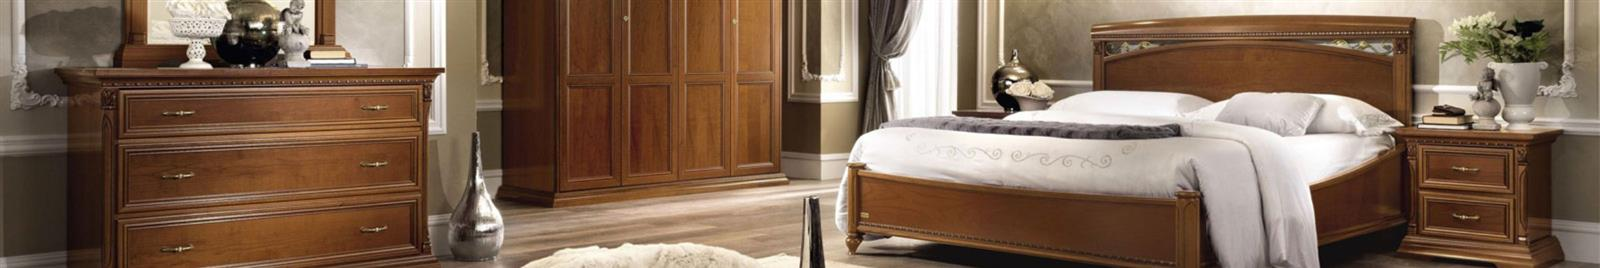 Treviso Night Cherry Wood - Camel Night Collection